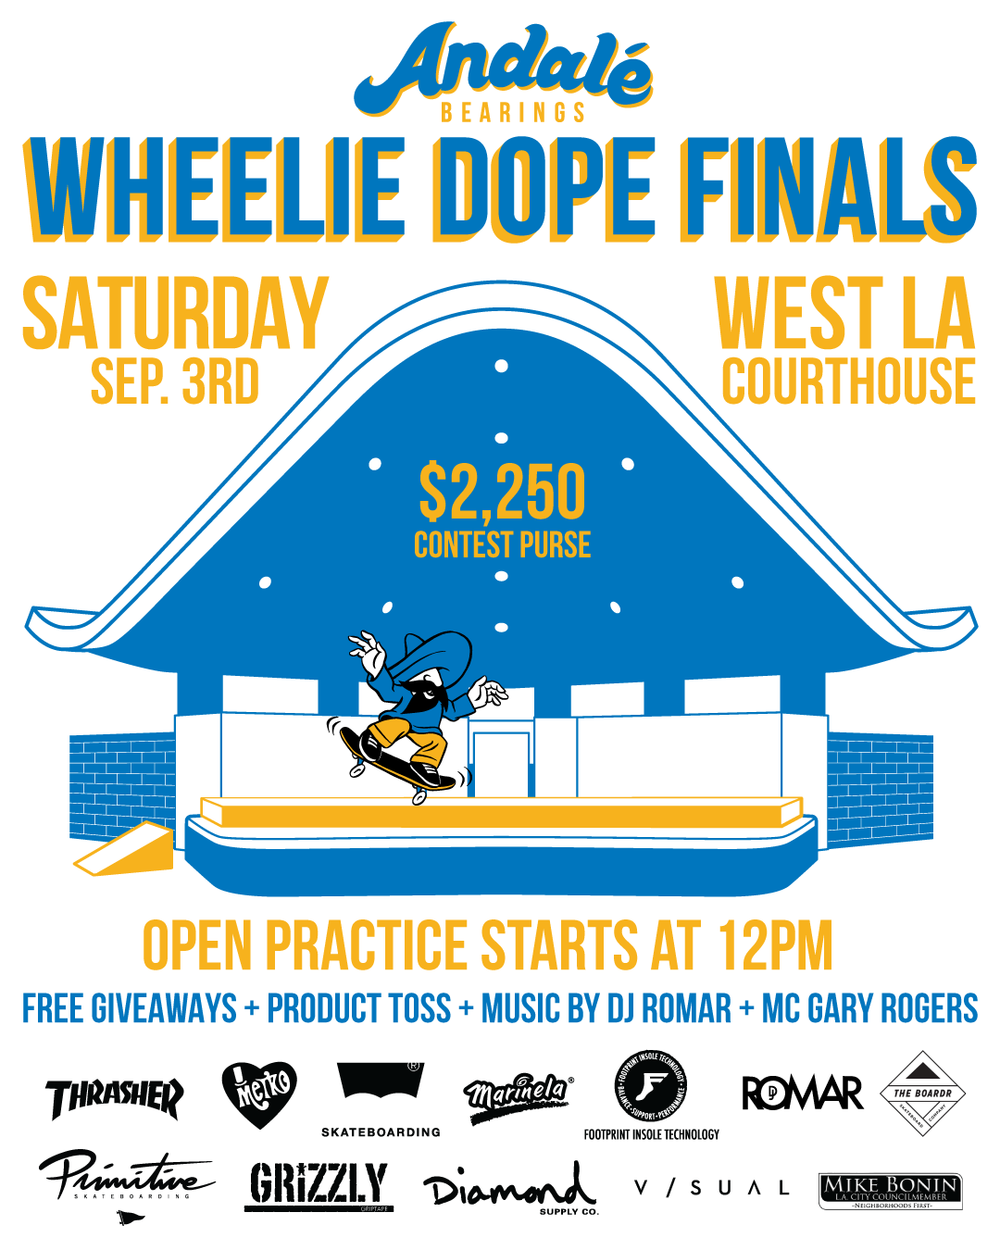 Andale Bearings Wheelie Dope Finals West LA Courthouse 2016 flyer